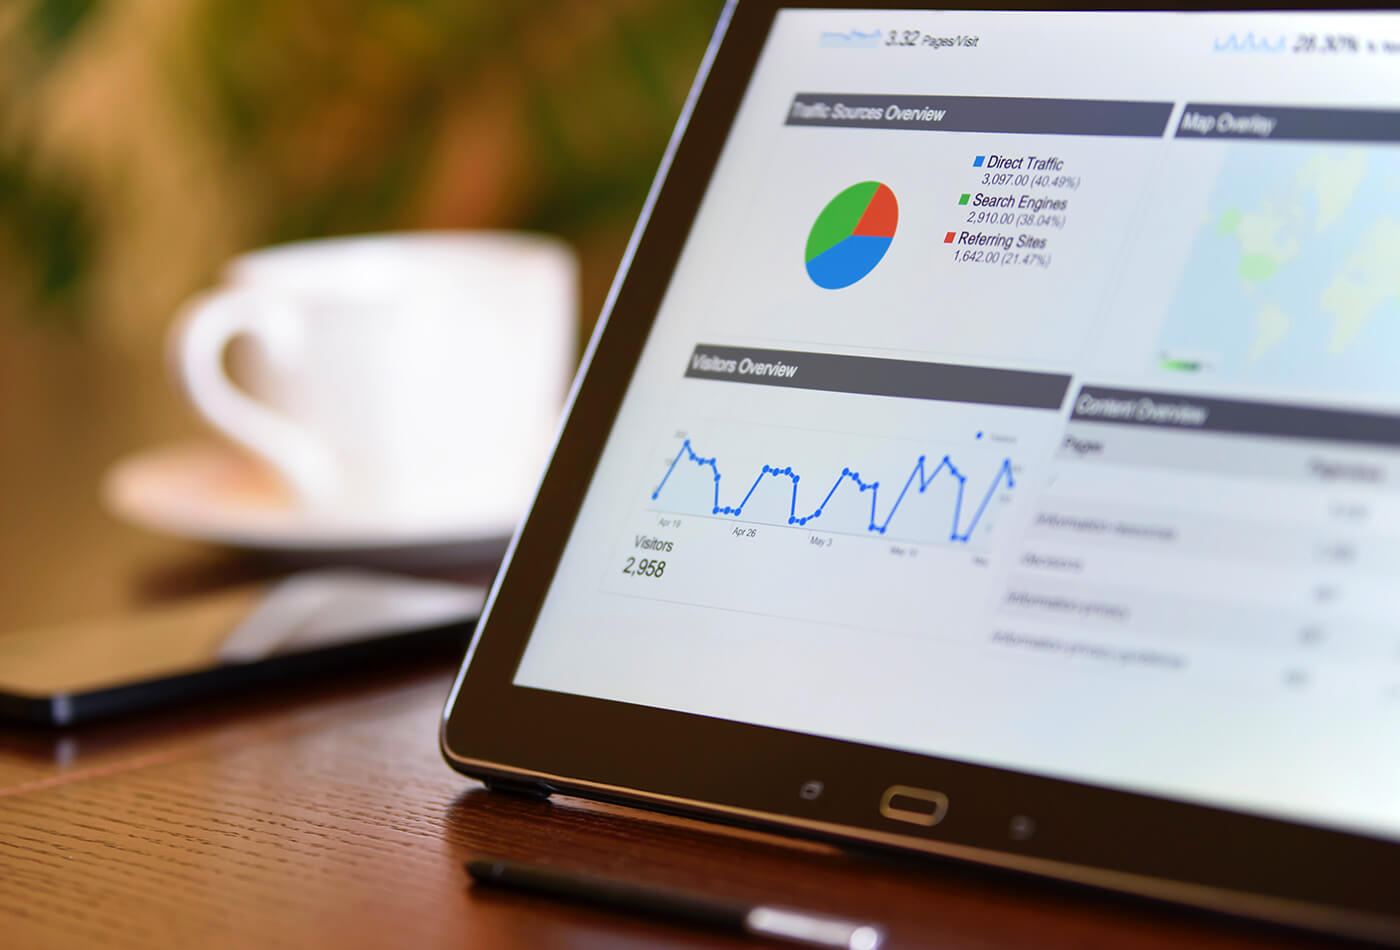 How to track your email campaign using UTM parameters